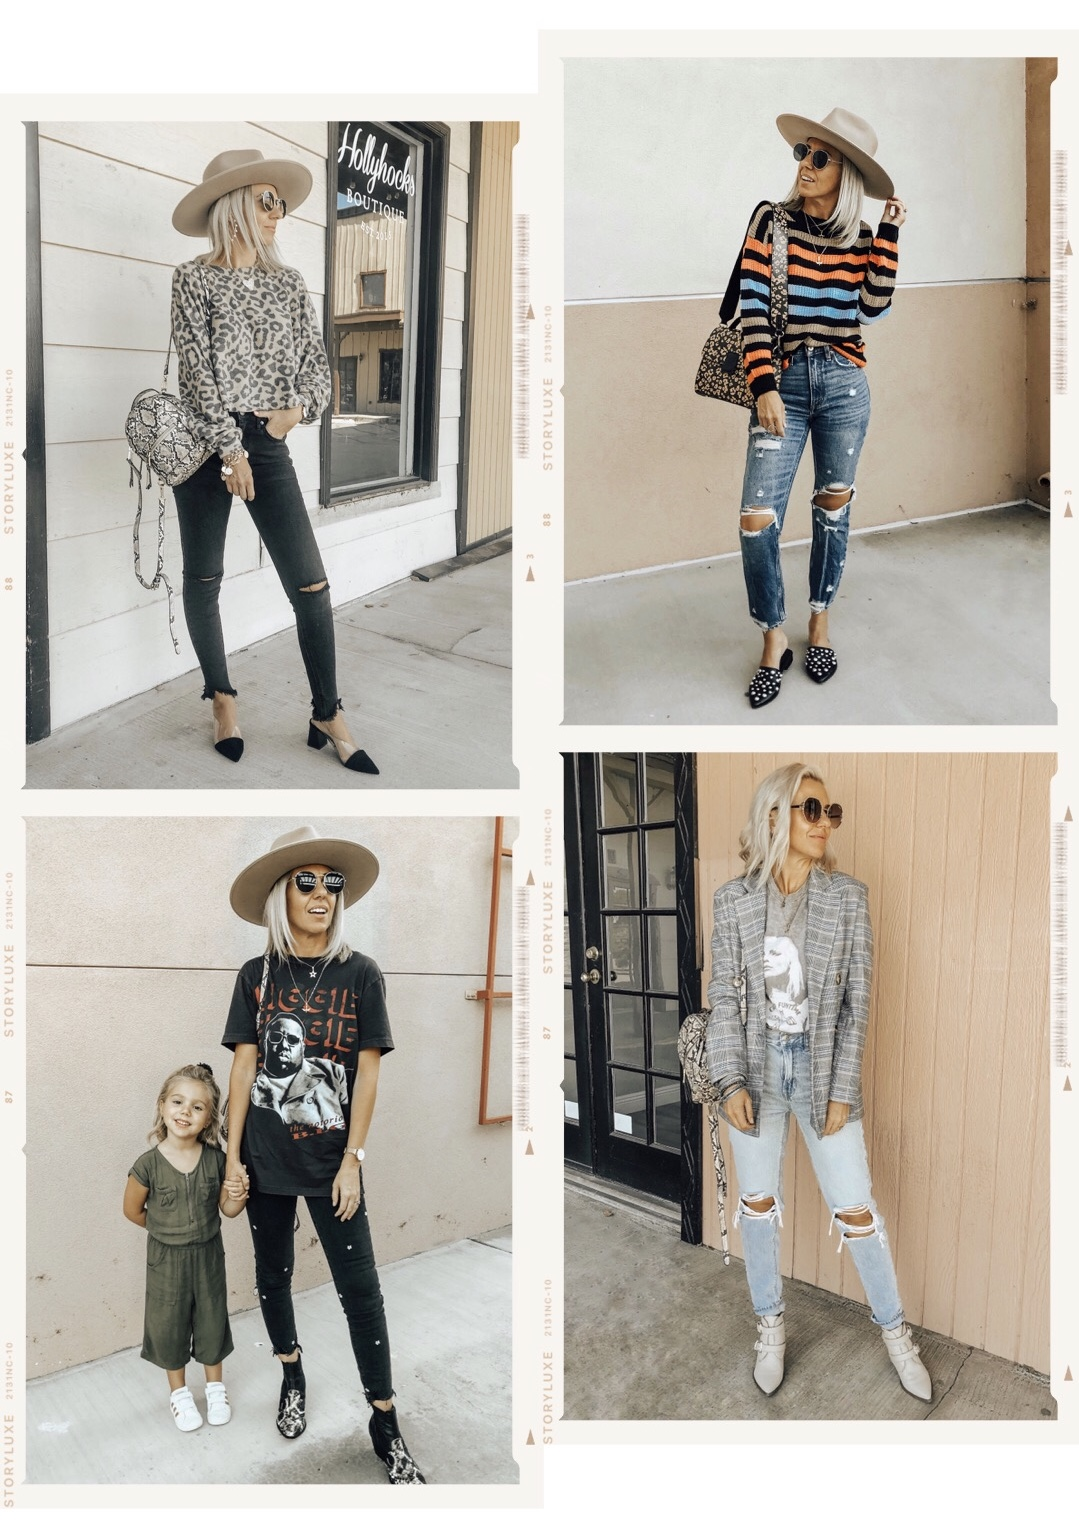 ALL ABOUT DENIM- MY CURRENT FAVORITES + NEW TRENDS FOR FALL- Jaclyn De Leon Style + sharing all my denim must have's from my favorite mom jeans, high rise skinny jeans and so much more. Of course all my denim is affordable and easy to wear with everything in your closet.